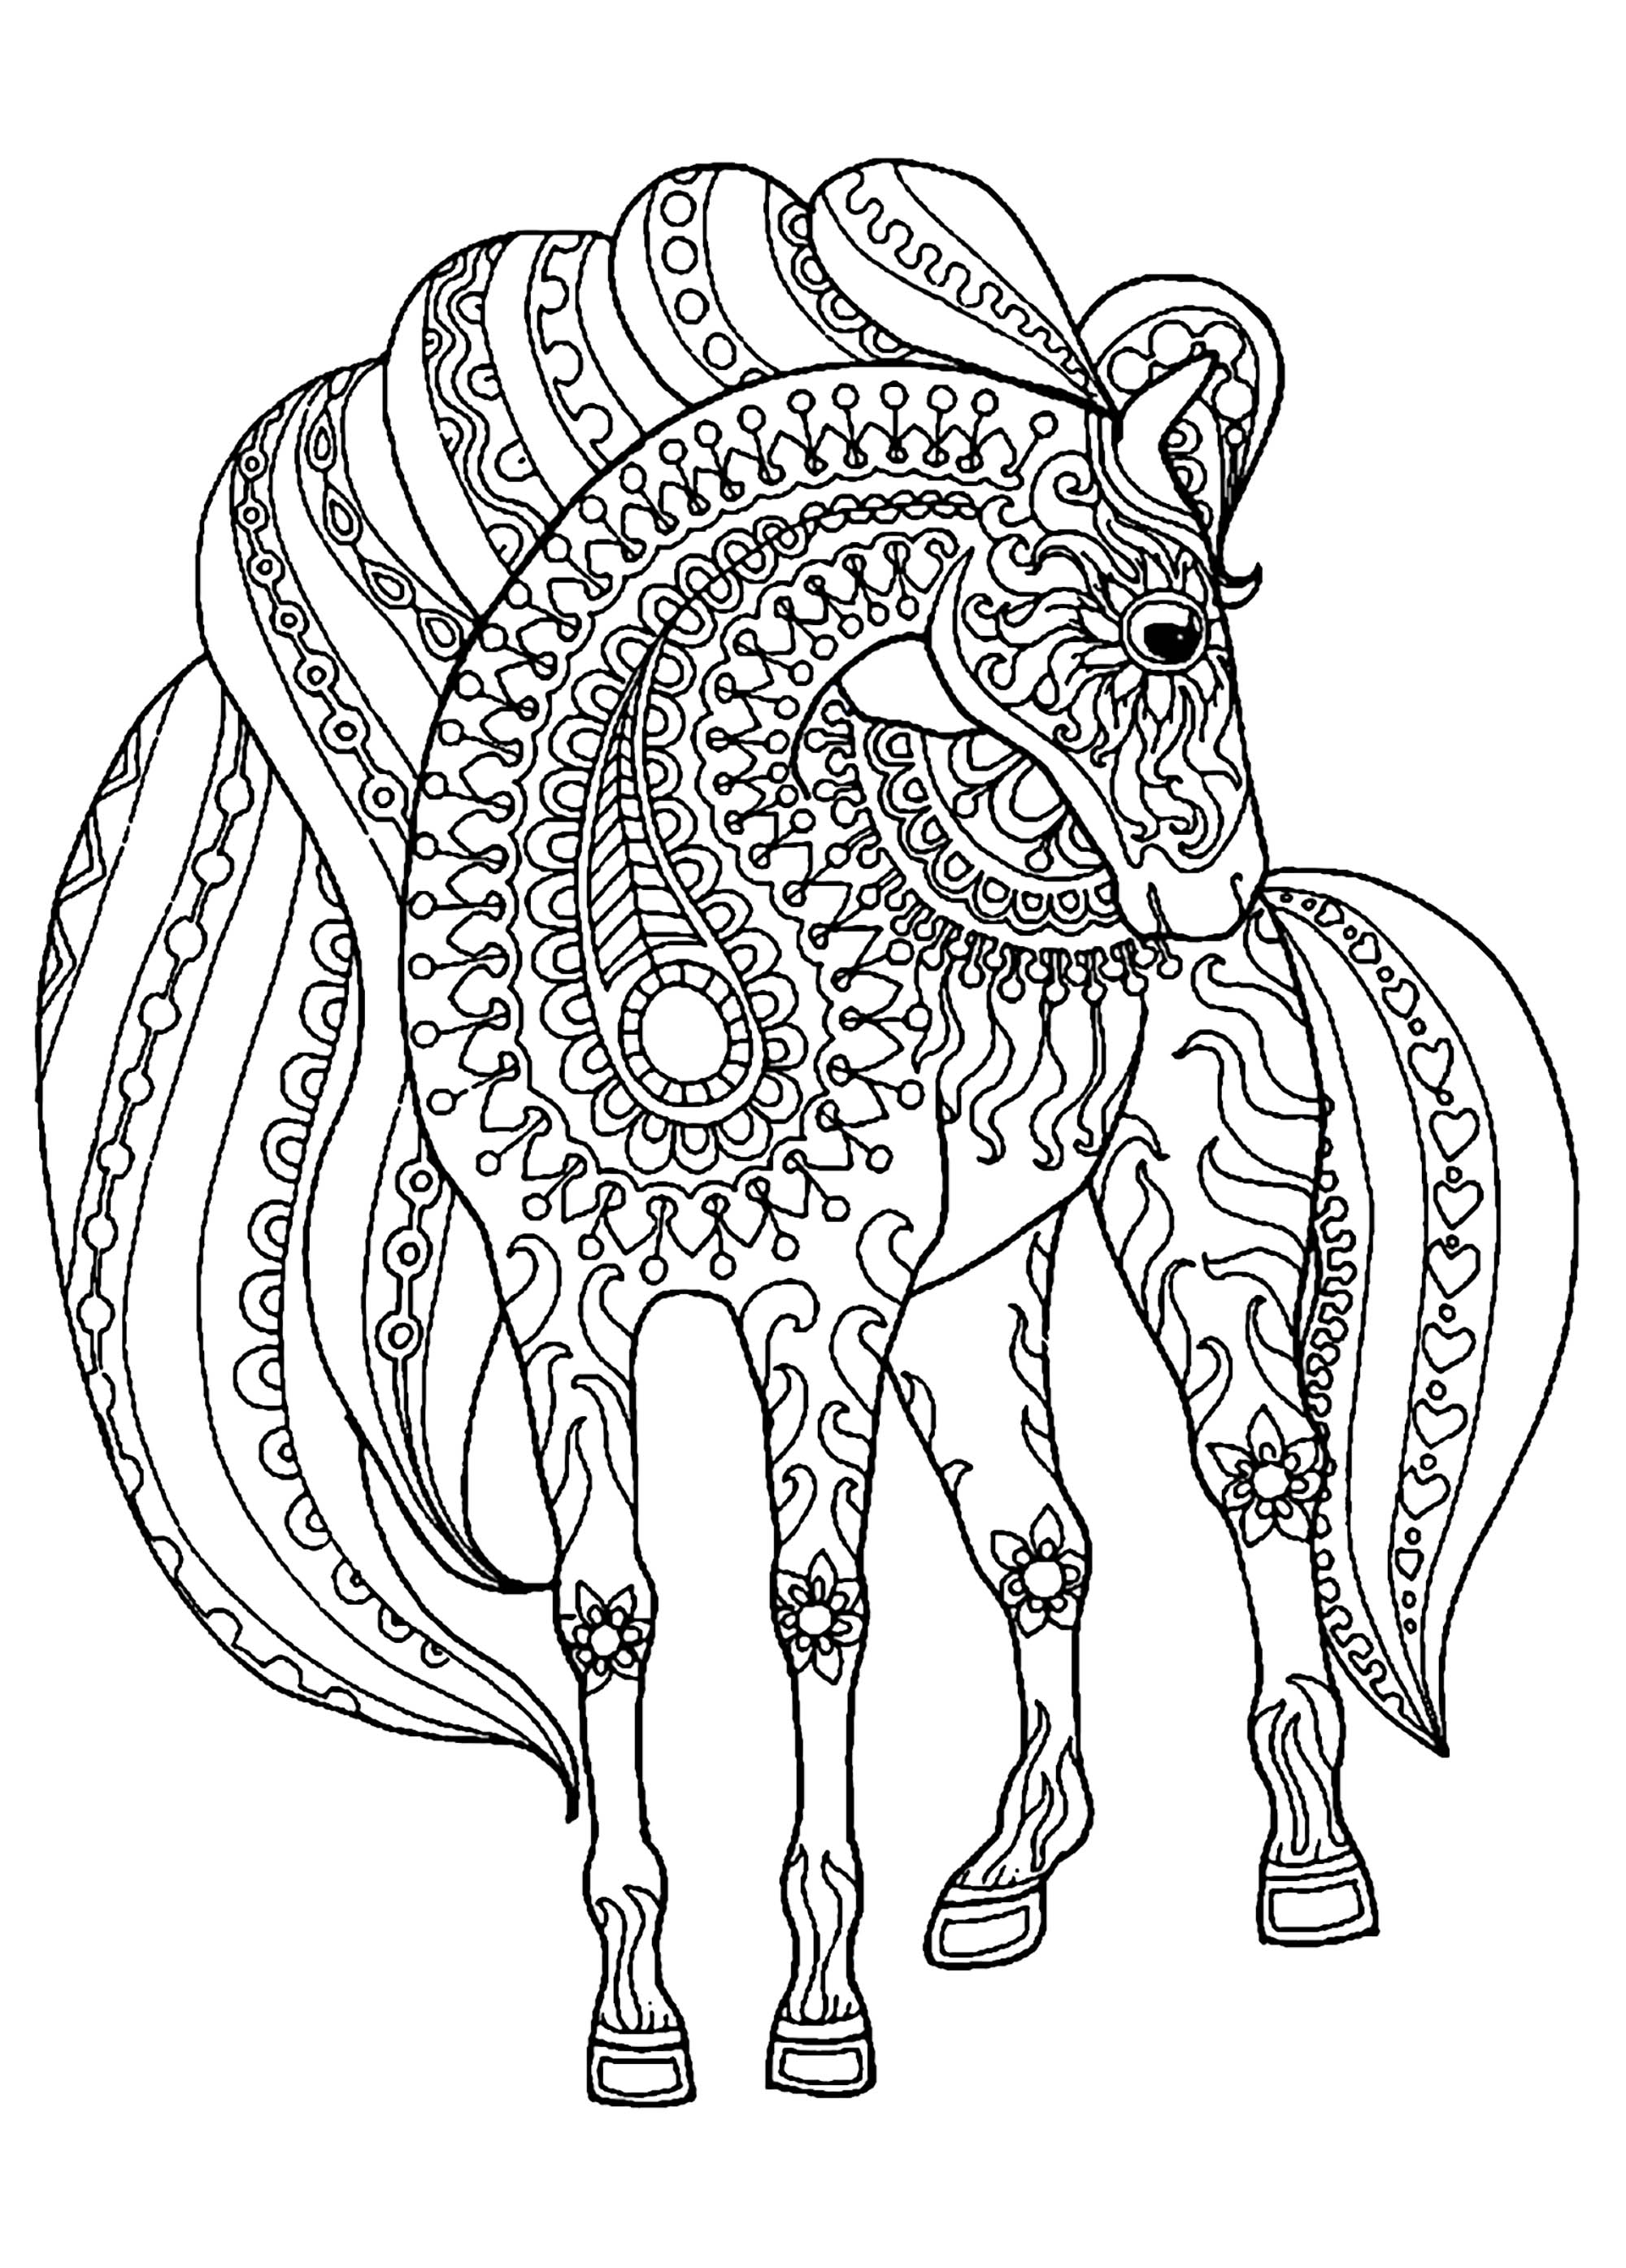 horses to print and color coloring pages of horses printable free coloring sheets print horses to color and